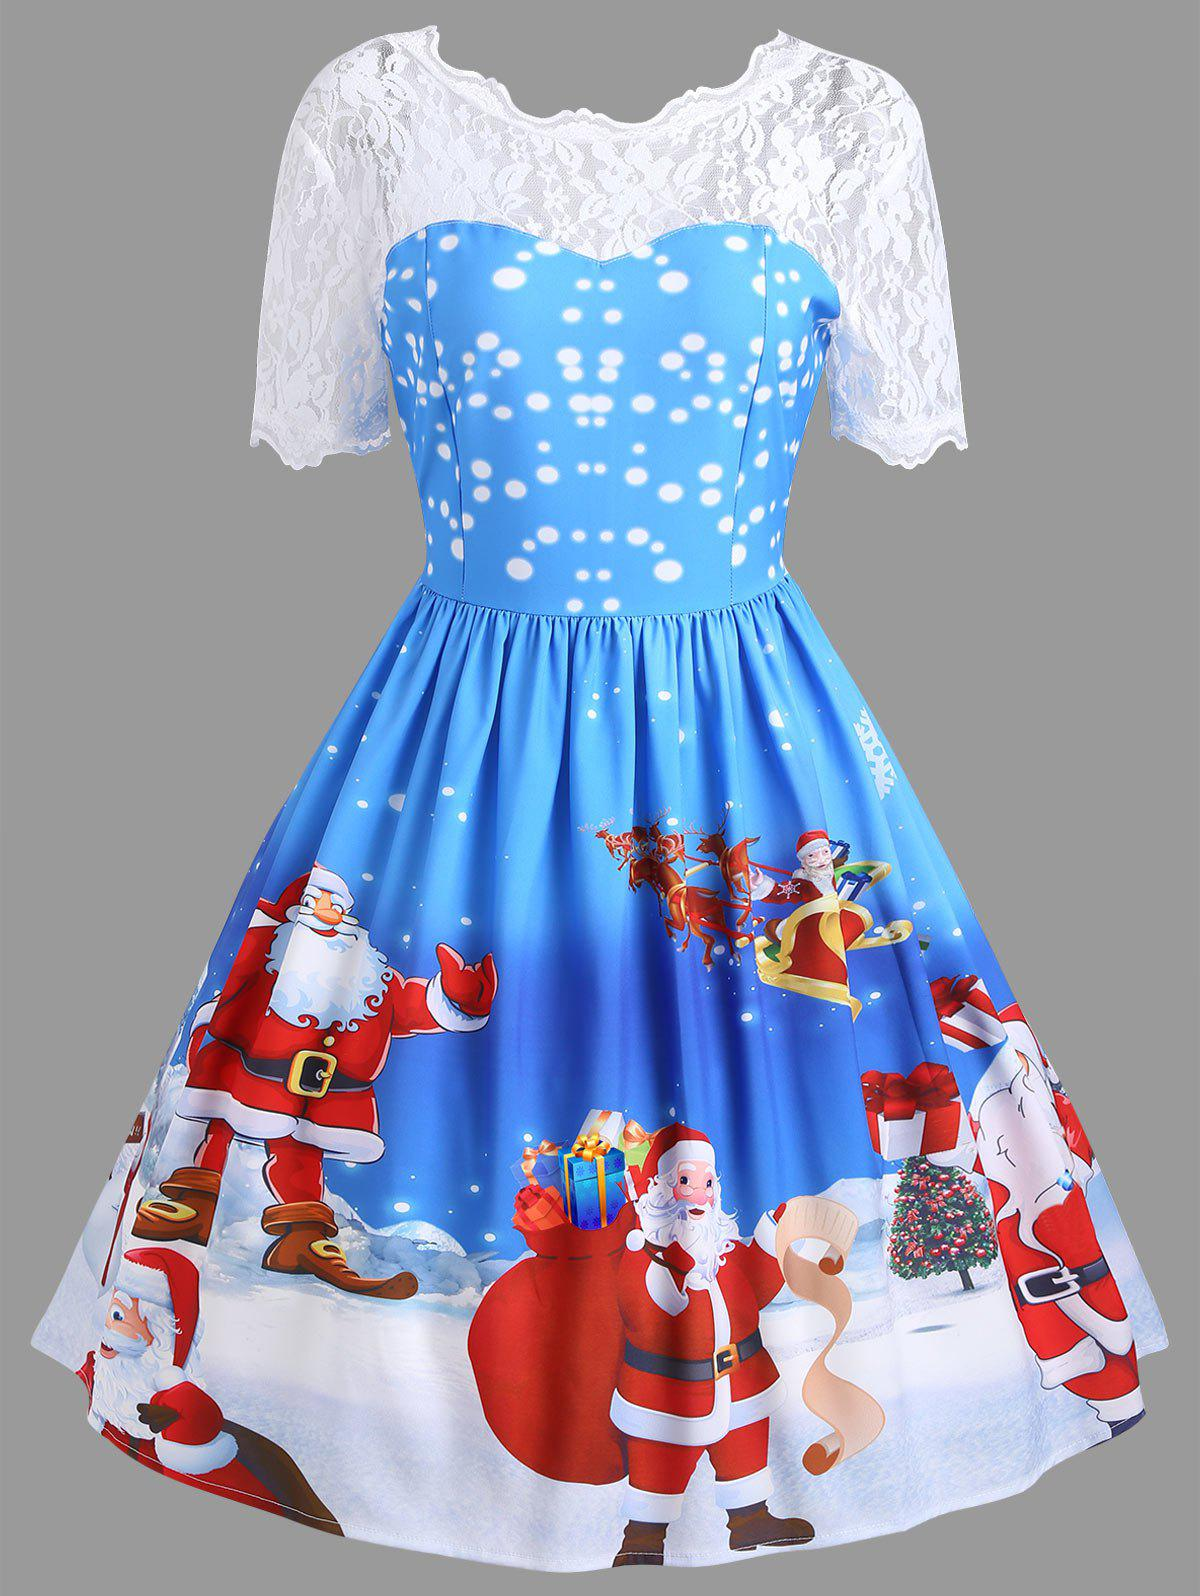 Vintage Lace Insert Santa Claus Print Christmas DressWOMEN<br><br>Size: 2XL; Color: BLUE; Style: Vintage; Material: Polyester,Spandex; Silhouette: A-Line; Dresses Length: Knee-Length; Neckline: Round Collar; Sleeve Length: Short Sleeves; Pattern Type: Patchwork,Print; With Belt: No; Season: Fall,Spring; Weight: 0.3500kg; Package Contents: 1 x Dress;